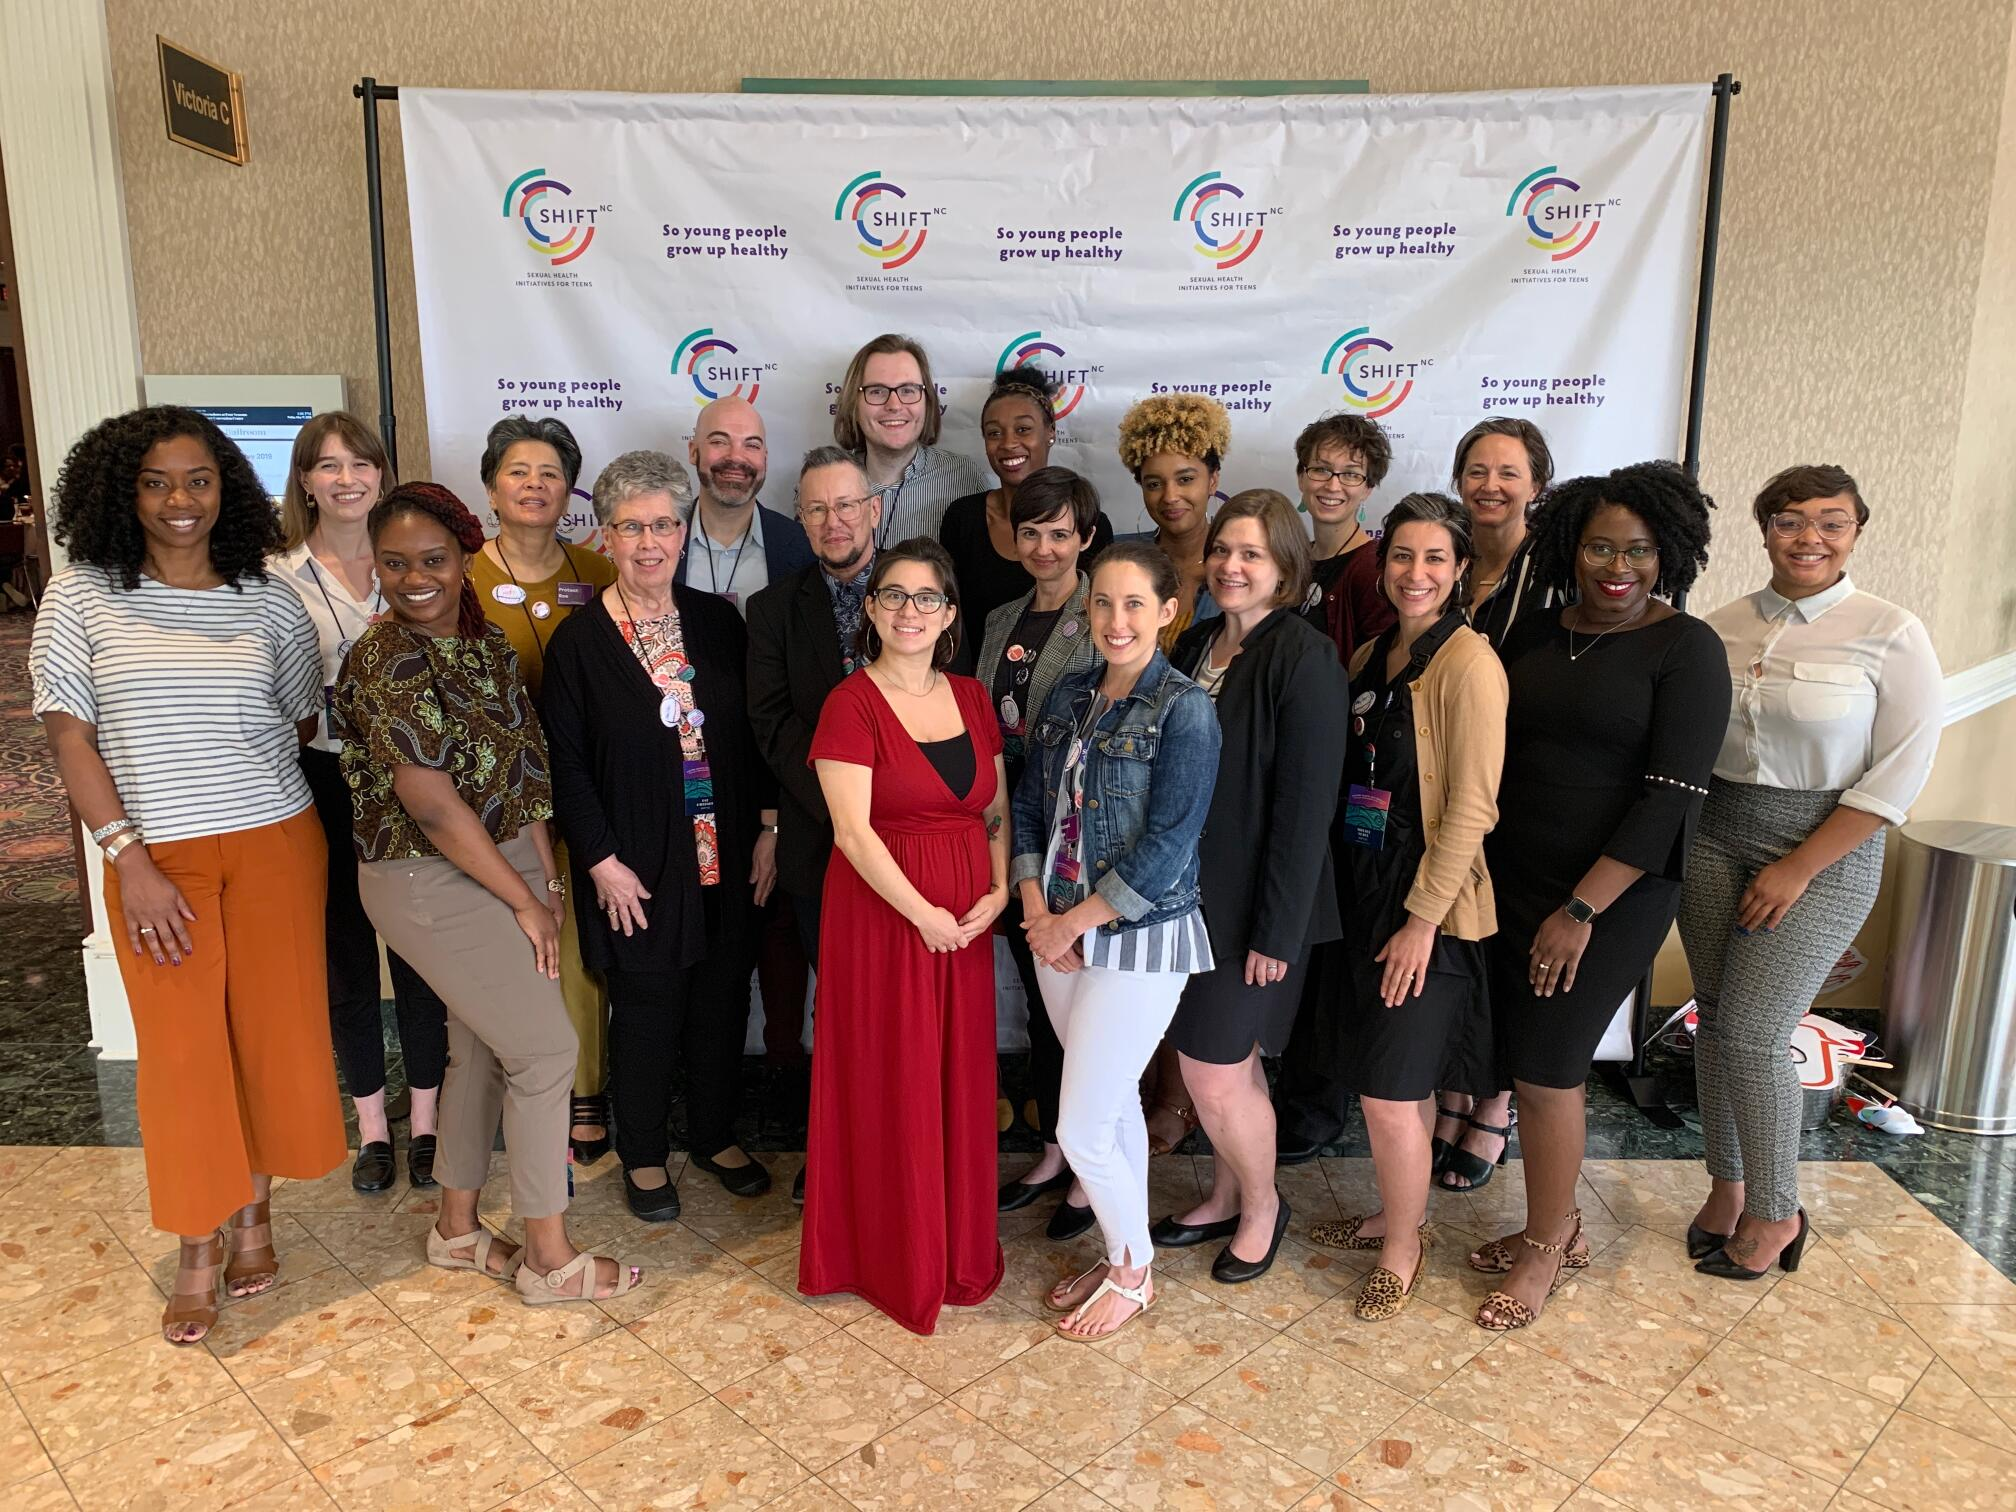 Group photo of shift nc staff from the 2019 annual conference on adolescent sexual health